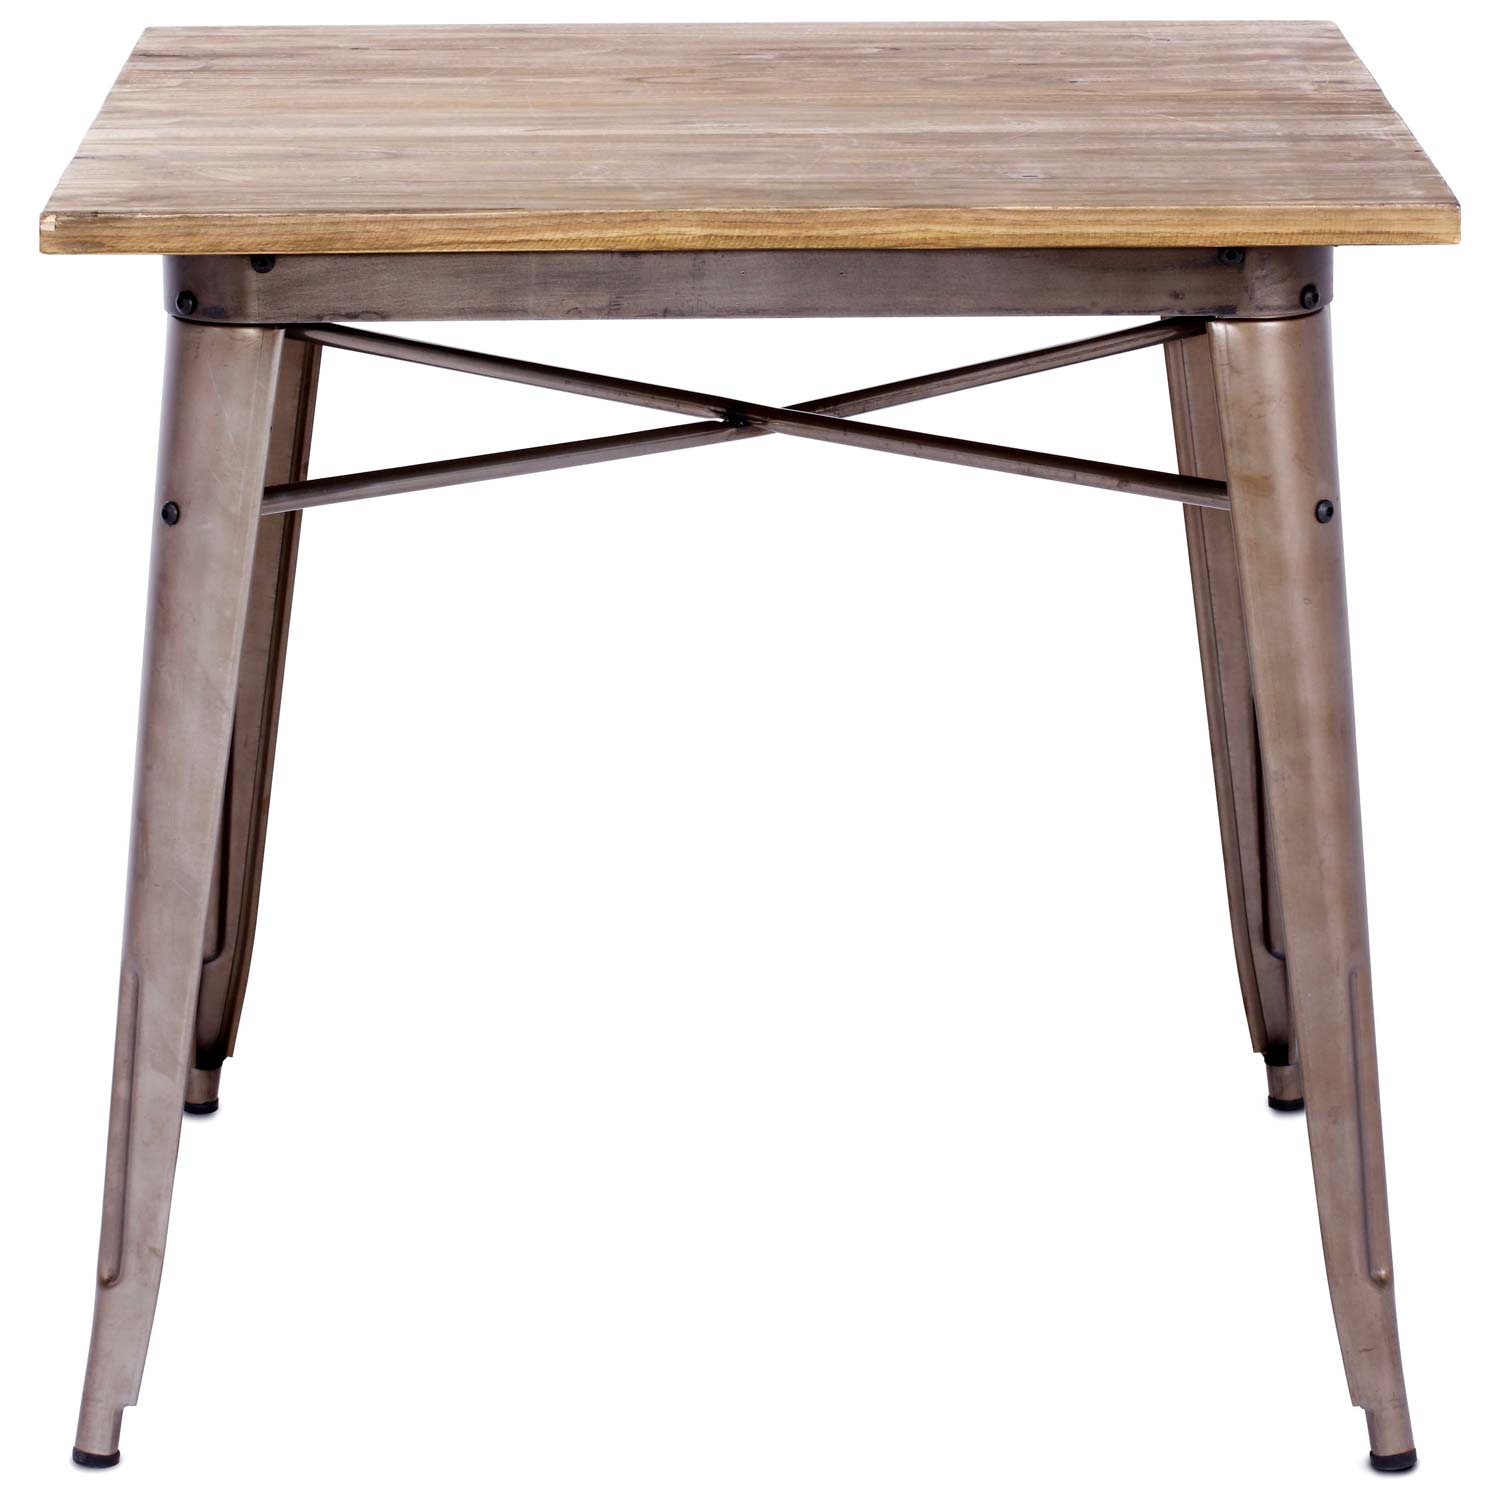 Titus Square Dining Table Steel Wood Top Faux Rust  : 109124 2 from www.dcgstores.com size 1500 x 1500 jpeg 109kB